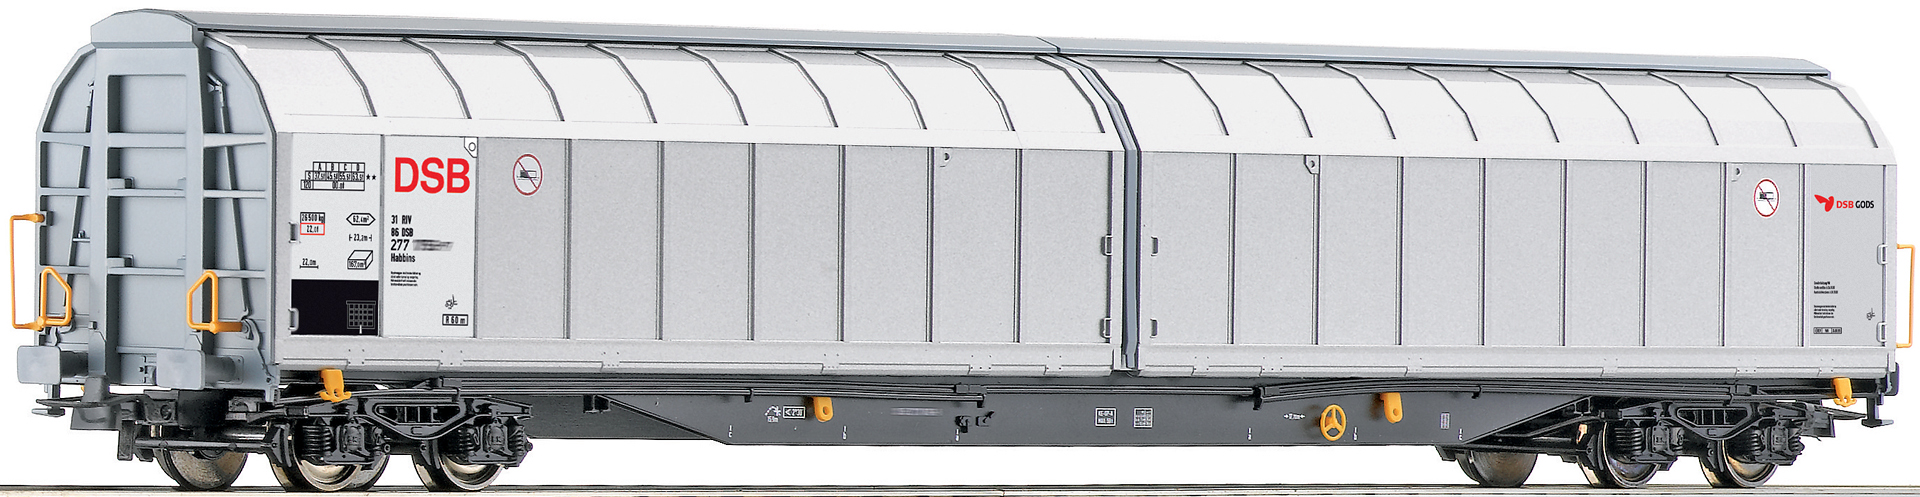 Roco 66433 - Sliding Wall Wagon, DSB